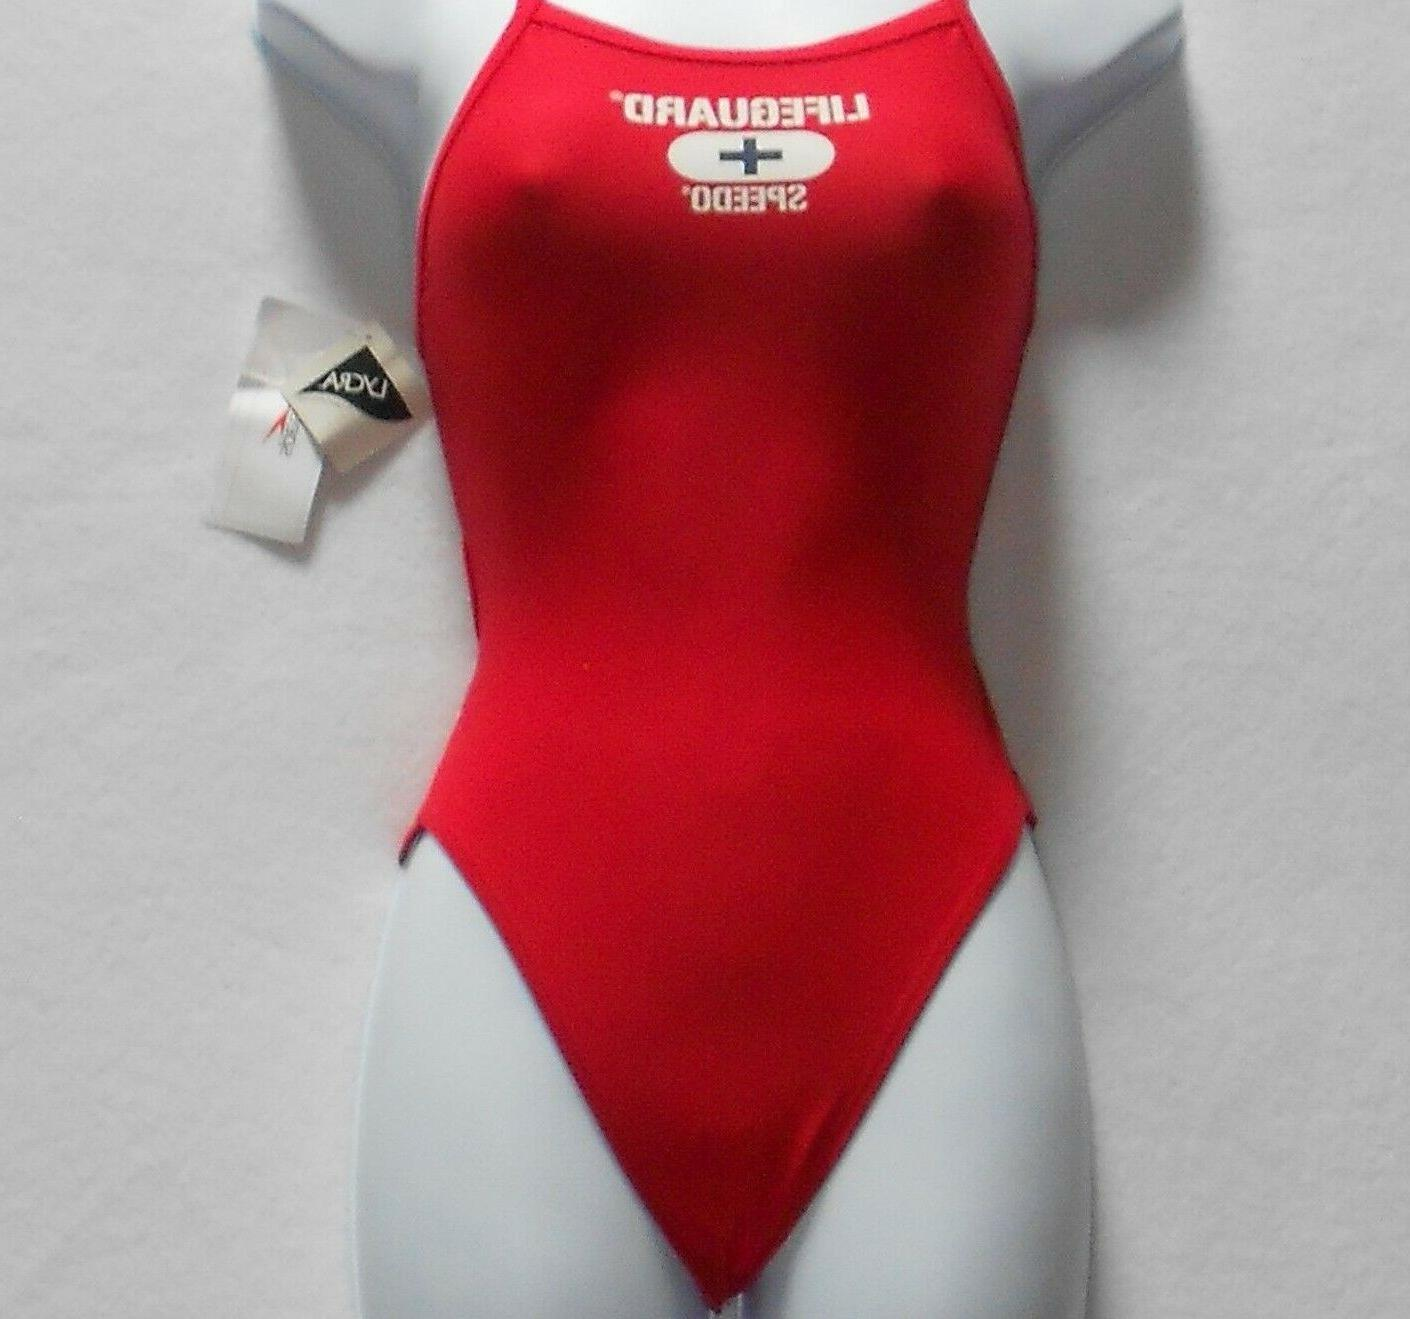 New SUIT 14 GIRLS 4 7190111/7190112